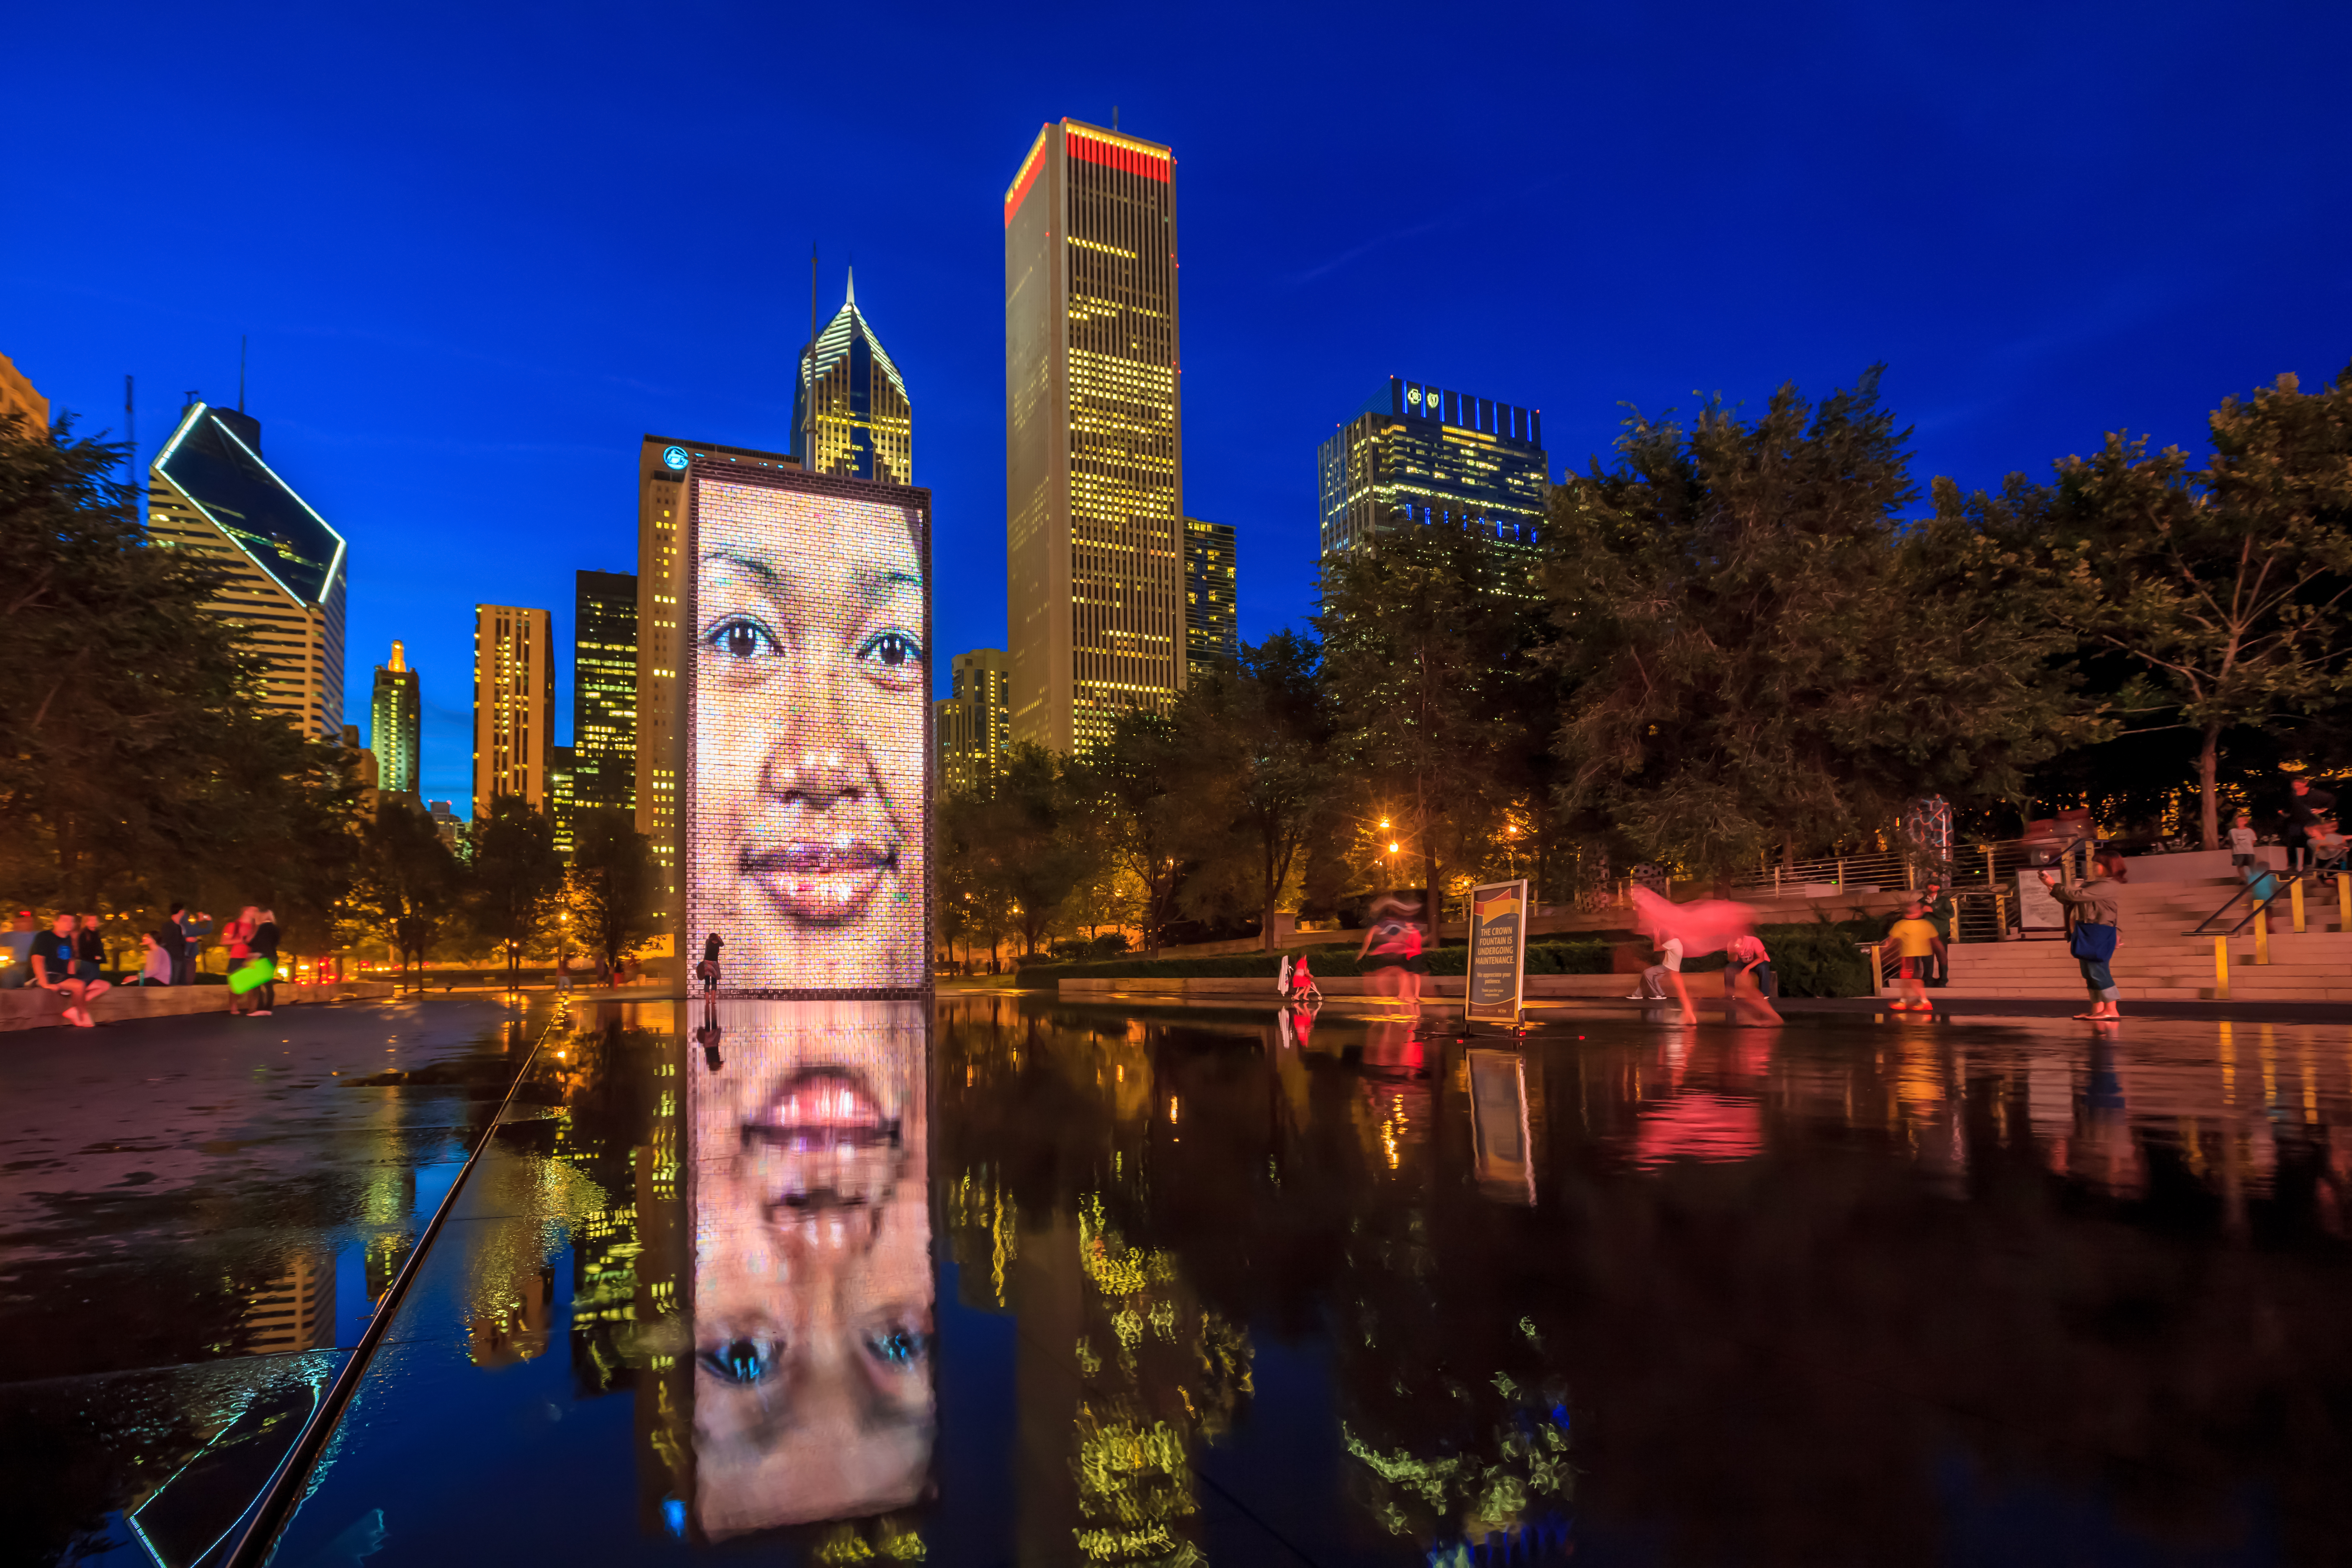 Downtown Chicago's most iconic public art